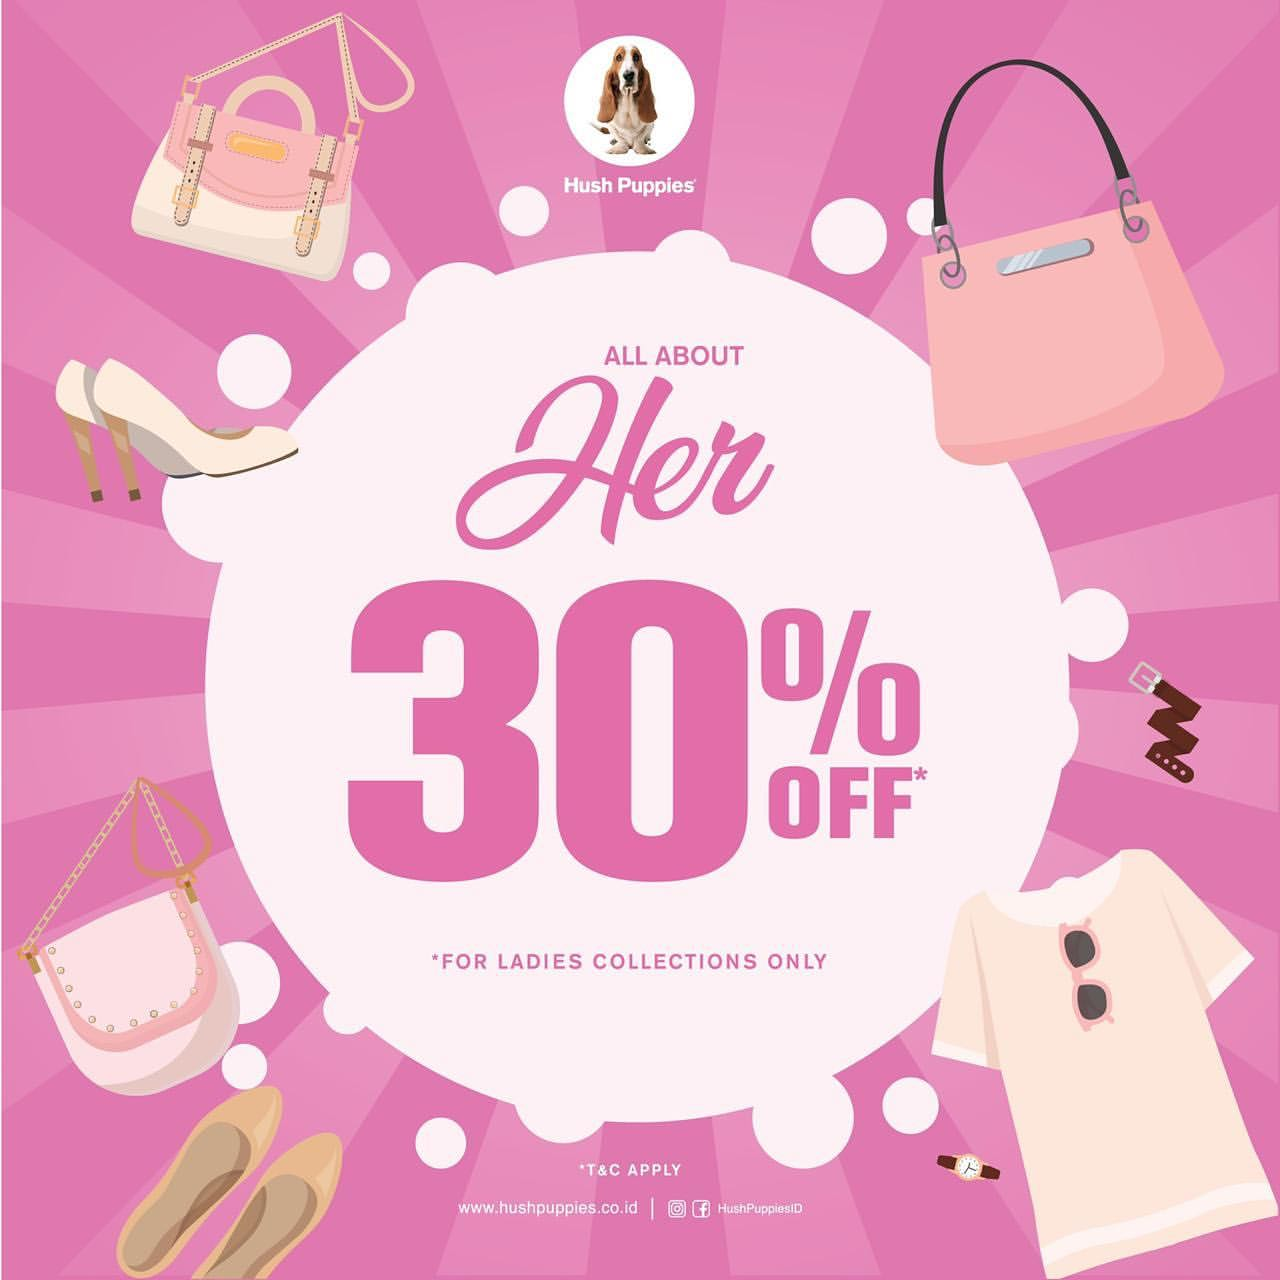 HUSH PUPPIES ALL ABOUT HER DISCOUNT up to 30% off for Ladies Collection